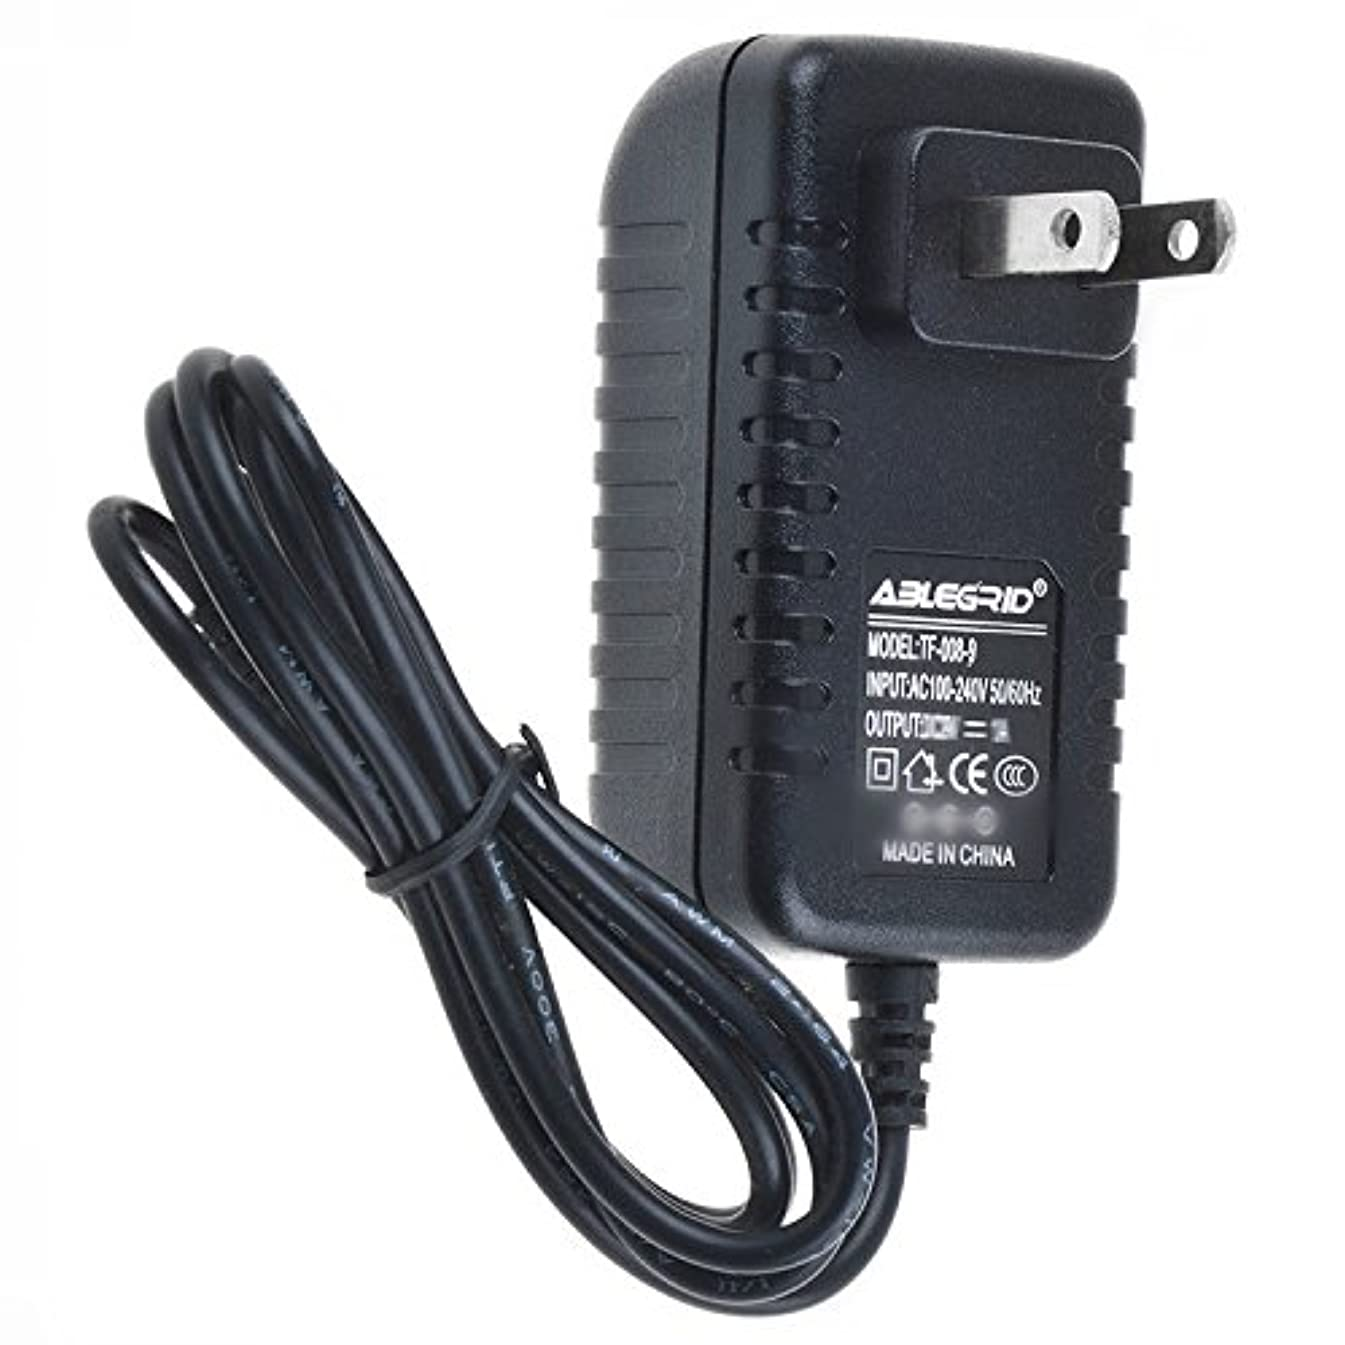 ABLEGRID AC/DC Adapter for Balance 5K 5100 Upright Exercise Bike Power Supply Cord Cable PS Charger Input: 100-240 VAC 50/60Hz Worldwide Voltage Use PSU